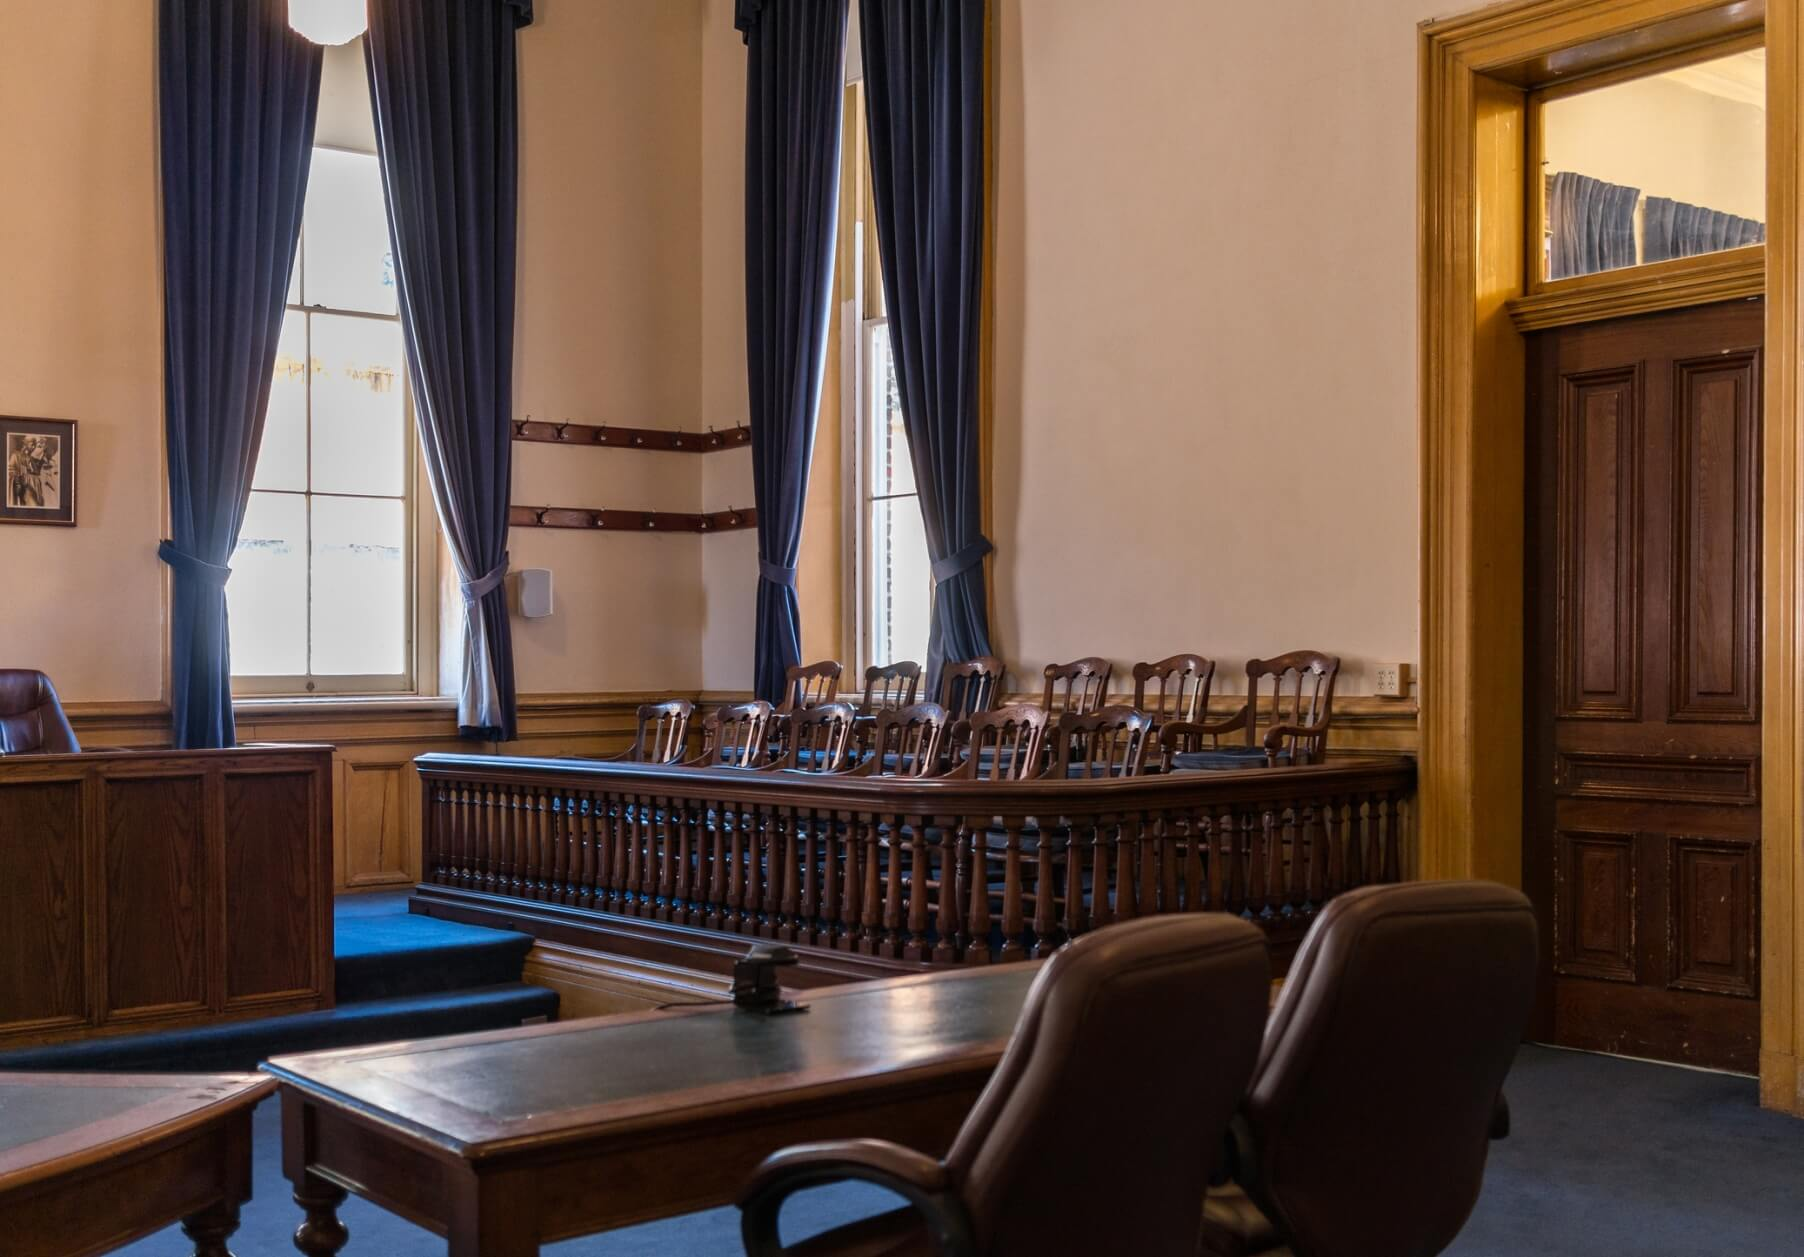 Jury section in court room